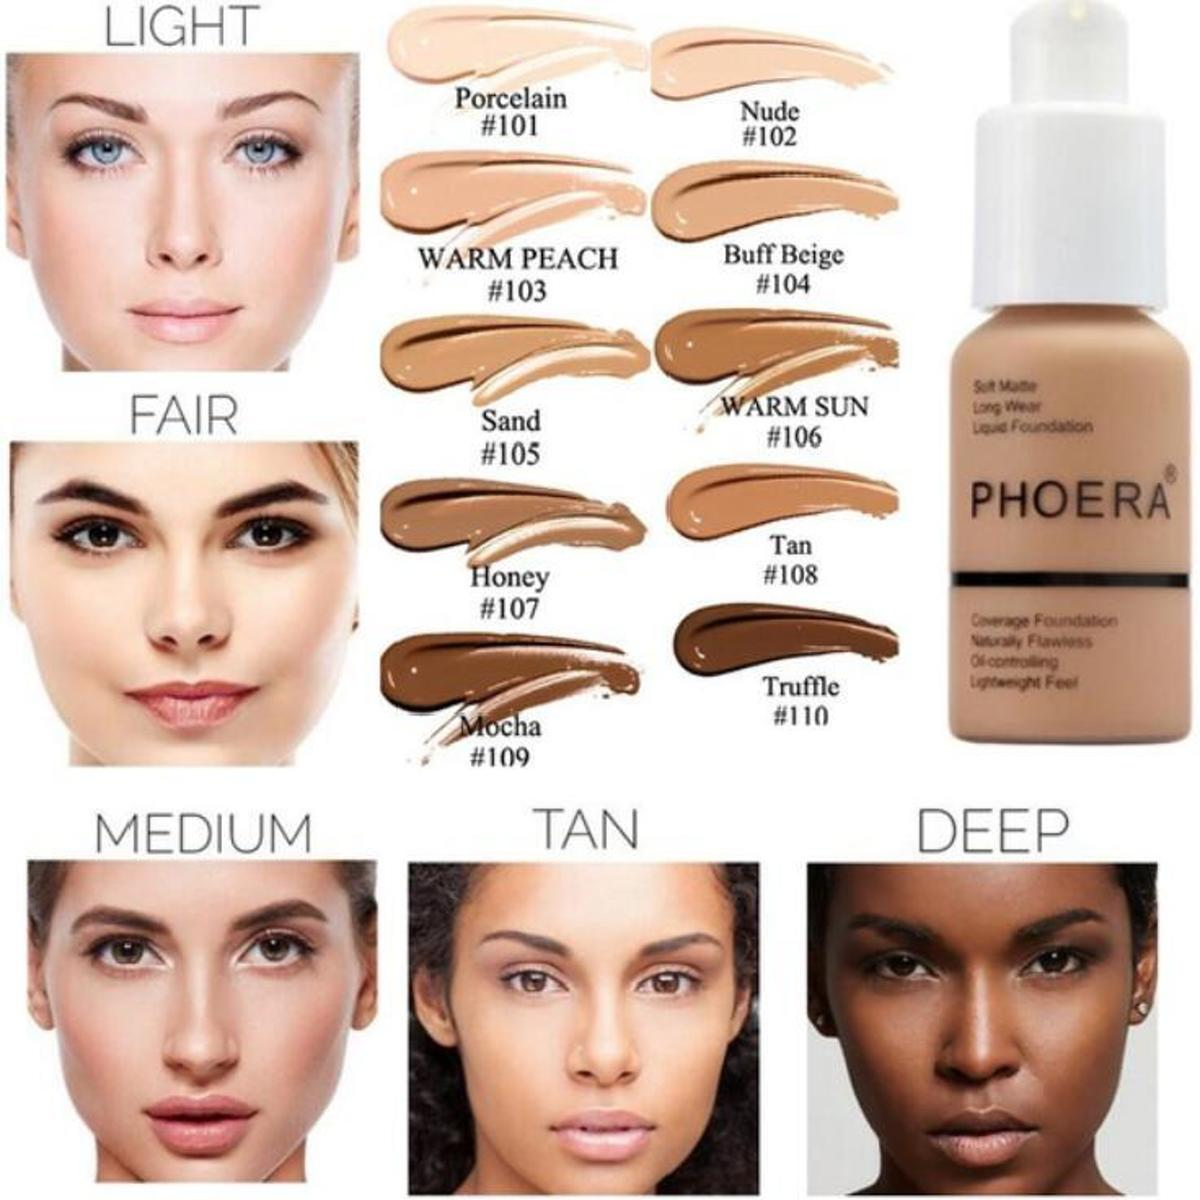 102 nude -PHOERA FOUNDATION™ - Soft Matte Full Coverage Liquid Foundation